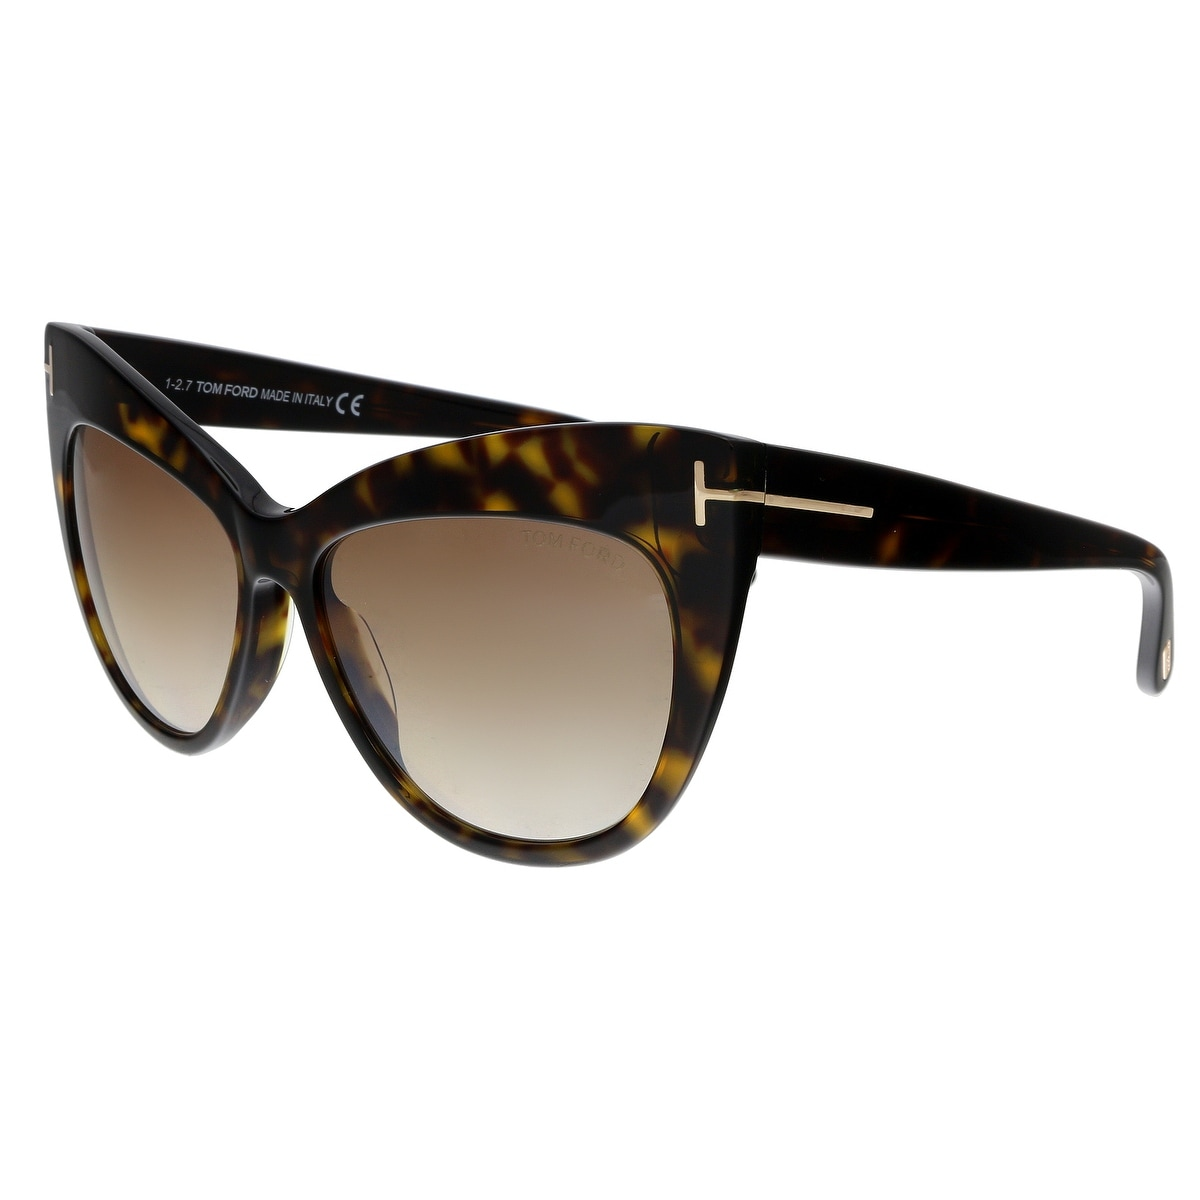 ca01bcb7f0 Tom Ford Women s Sunglasses